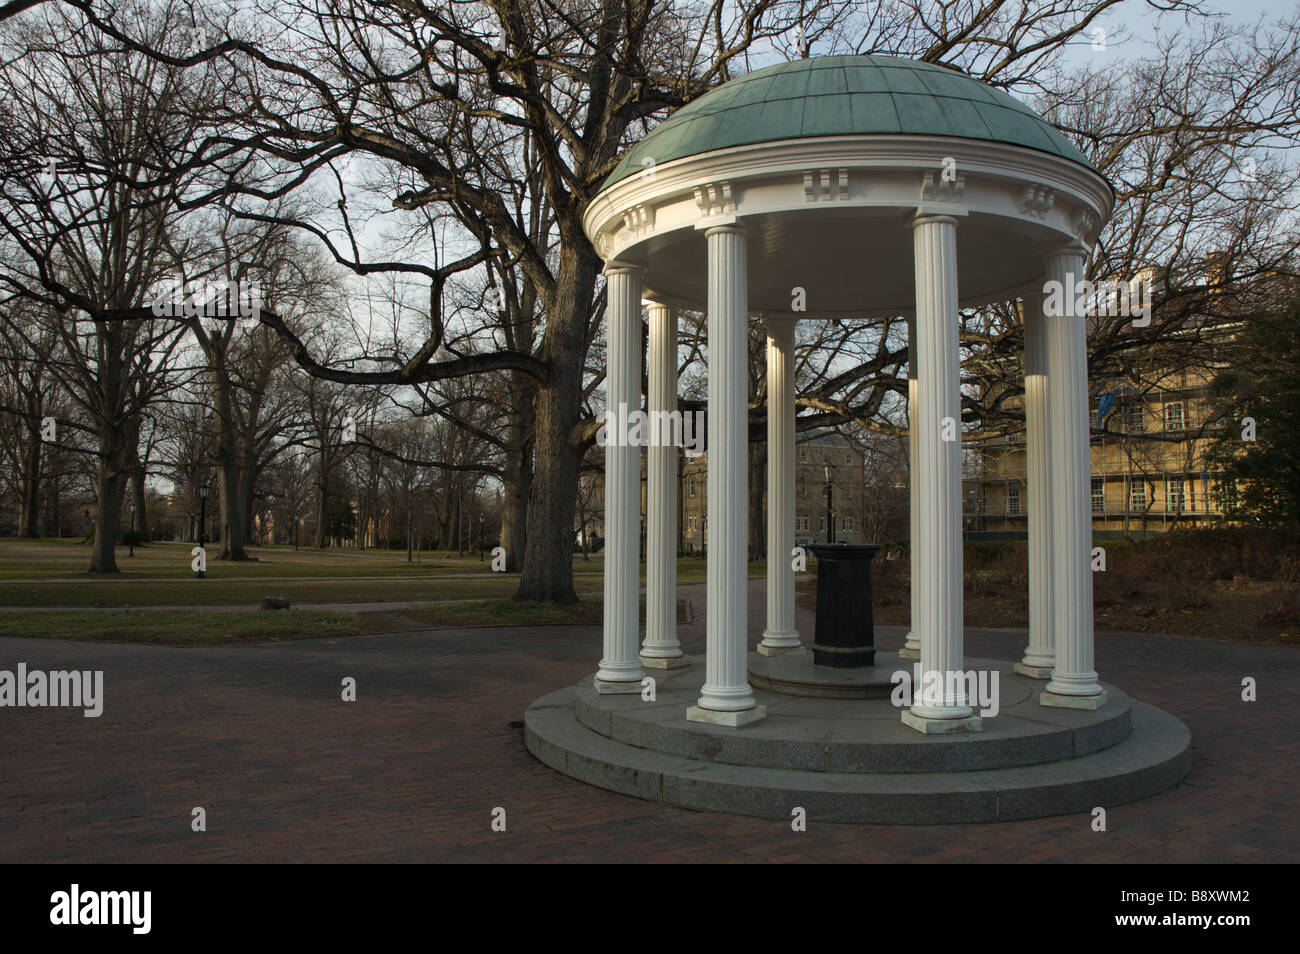 The Old Well, University of North Carolina at Chapel Hill - Stock Image